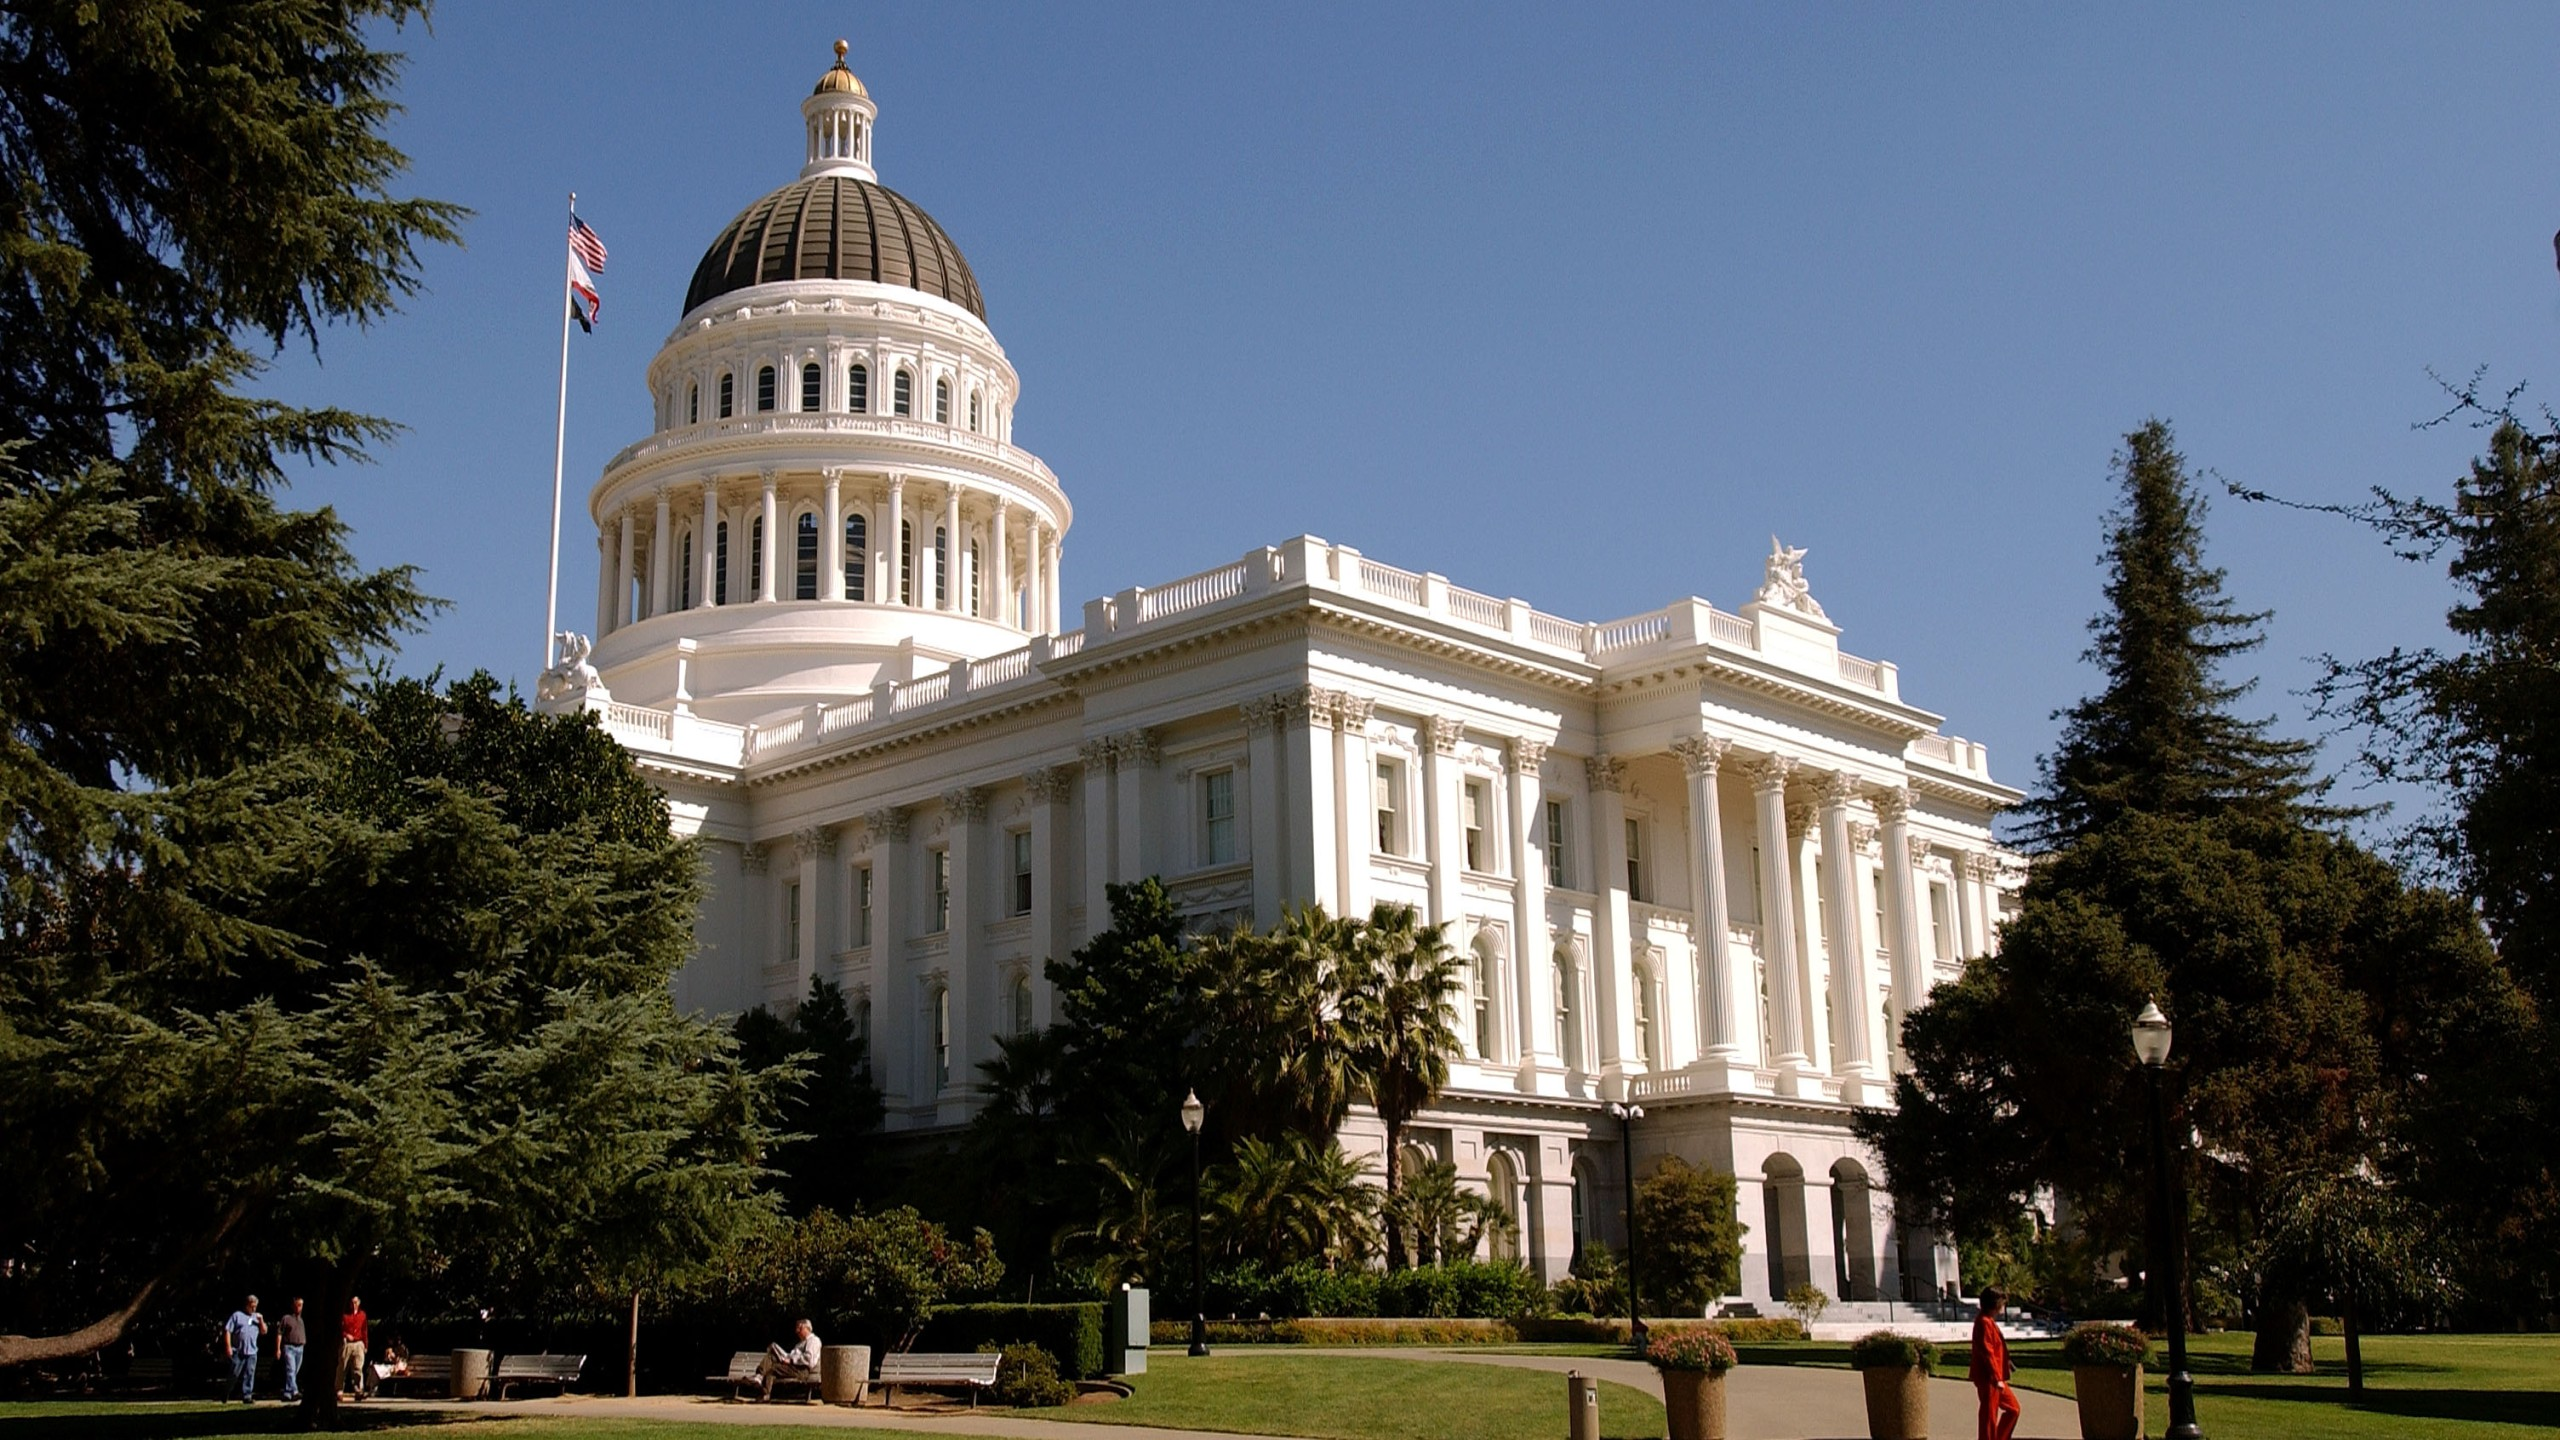 The California state Capitol building is seen on Oct. 9, 2003 in Sacramento. (Credit: David Paul Morris/Getty Images)